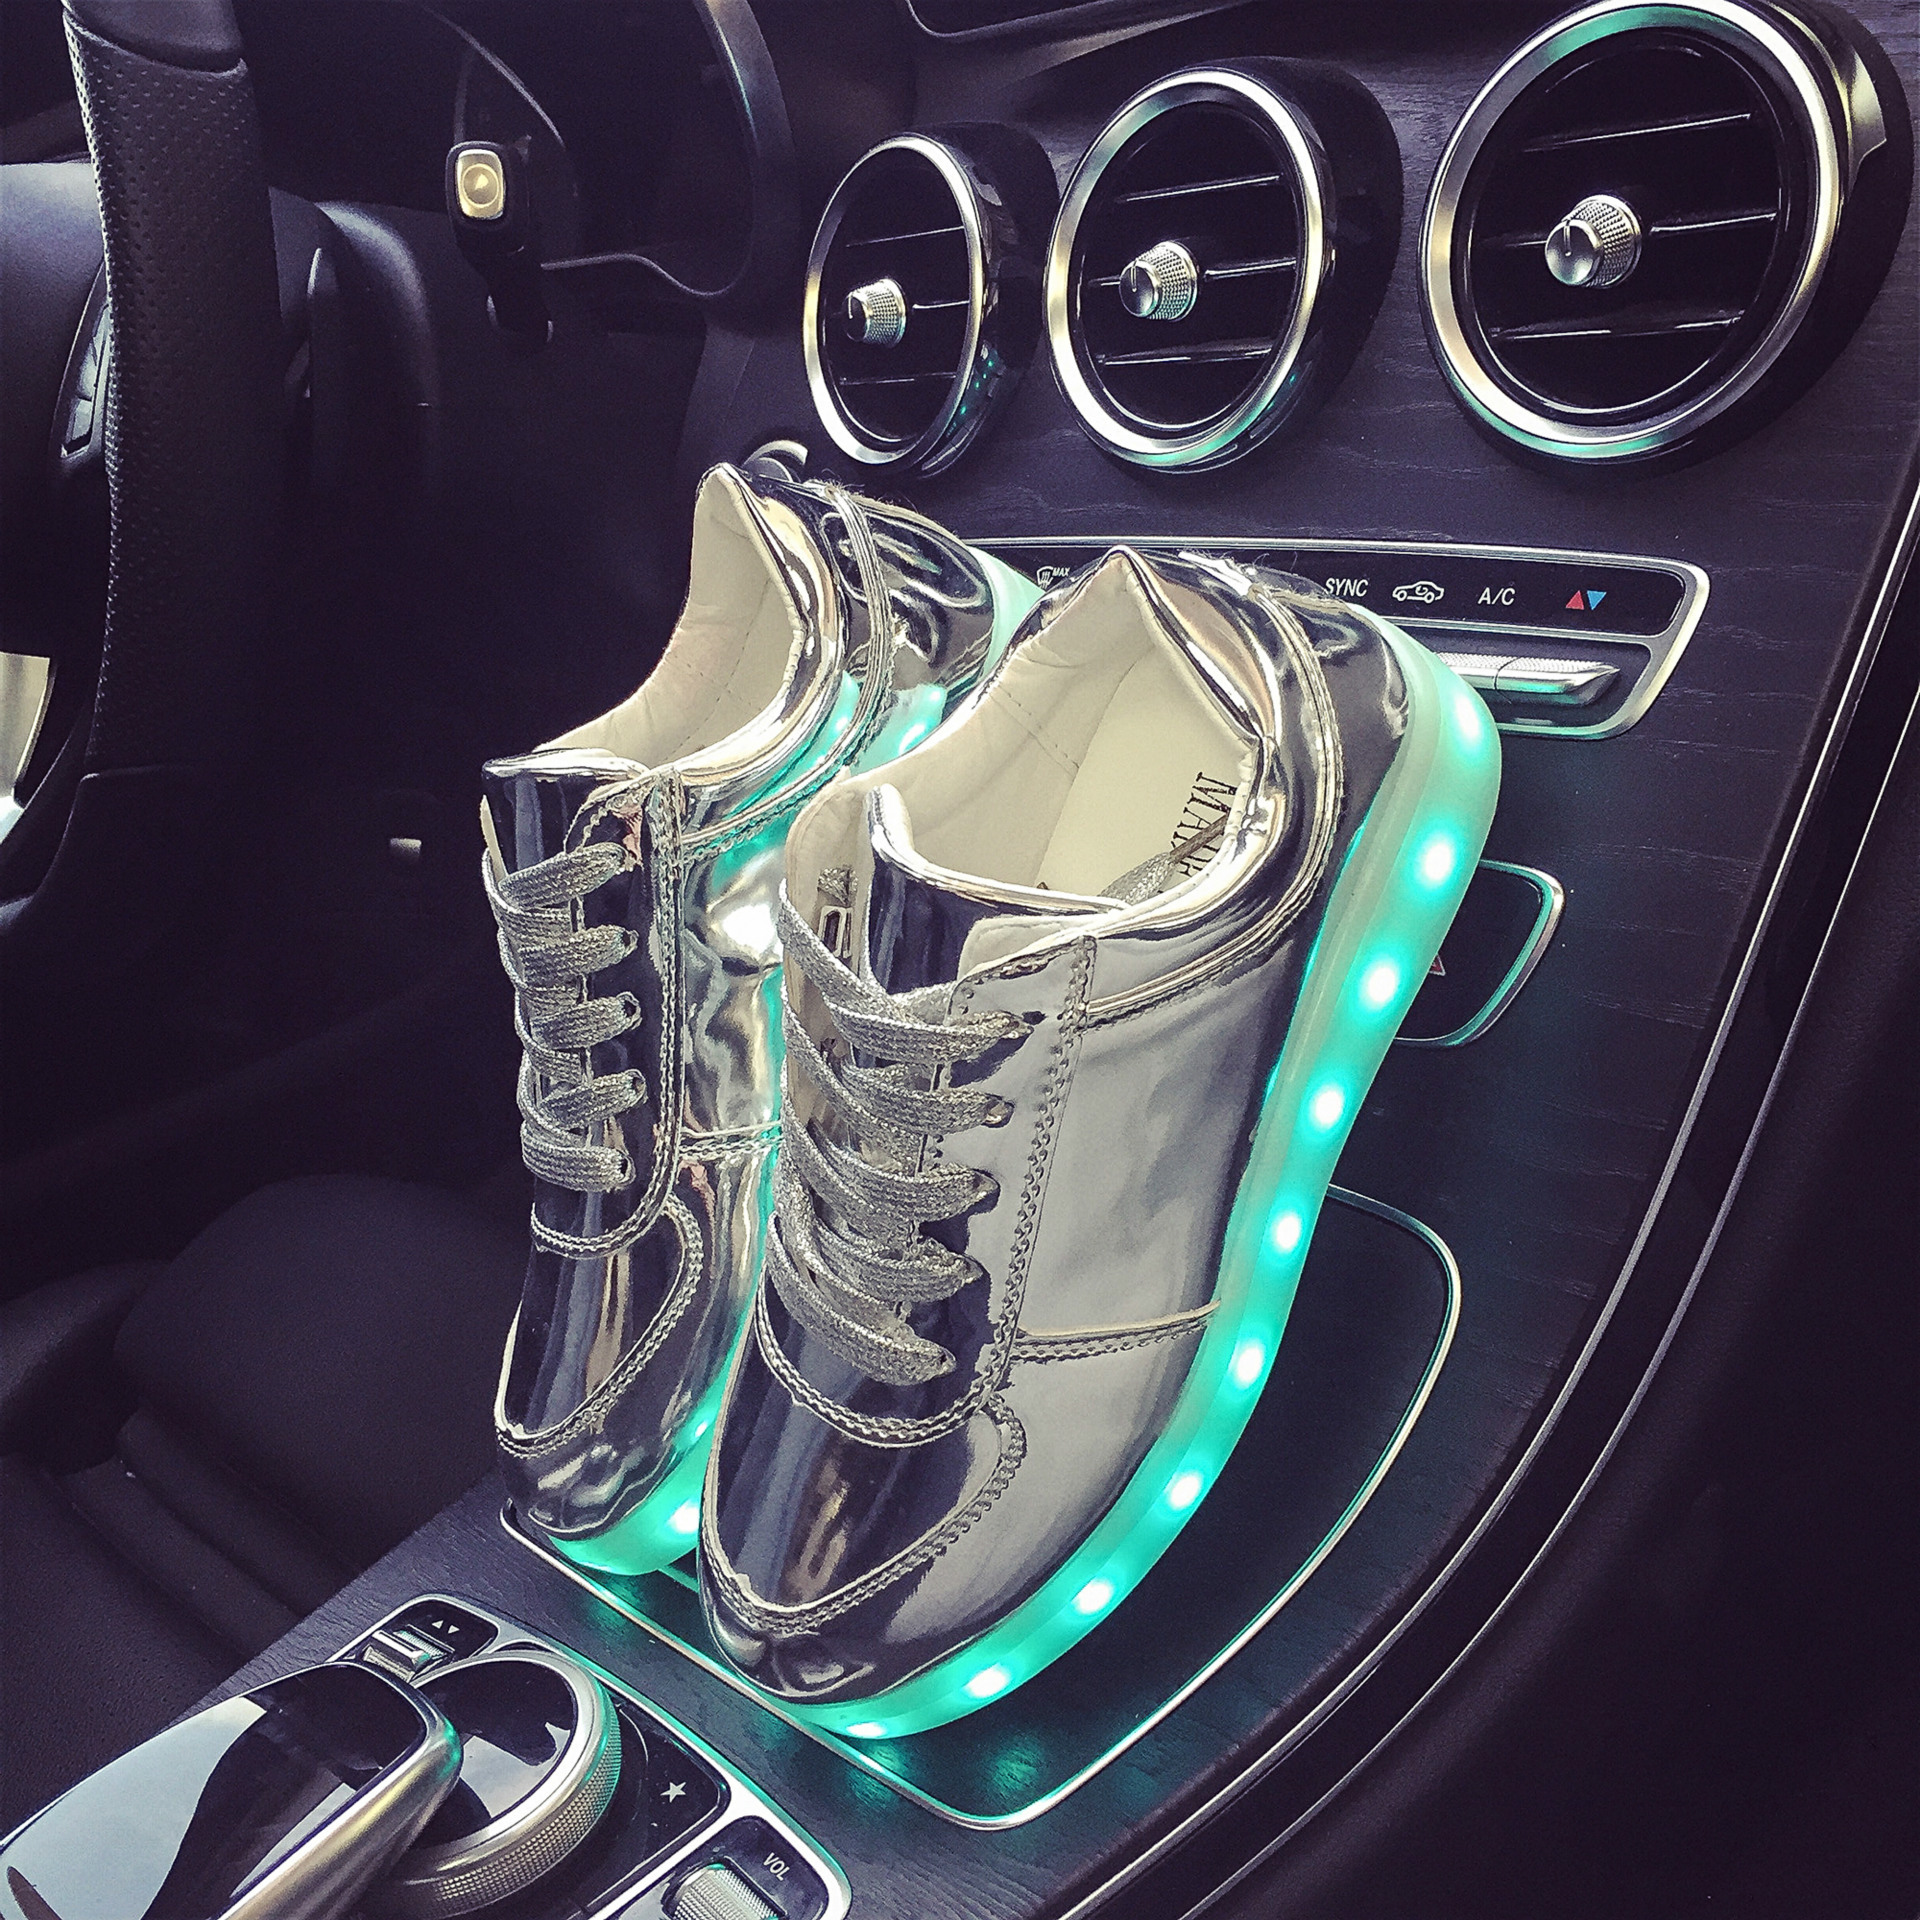 Eur Size 27-42 7 Colors Luminous Sneakers Glowing Boys LED Shoes Girls Child LED Slippers Light Up Shoes for Men Women size 36 43 led shoes glowing 7 colors led women fashion luminous led light up shoes for adults